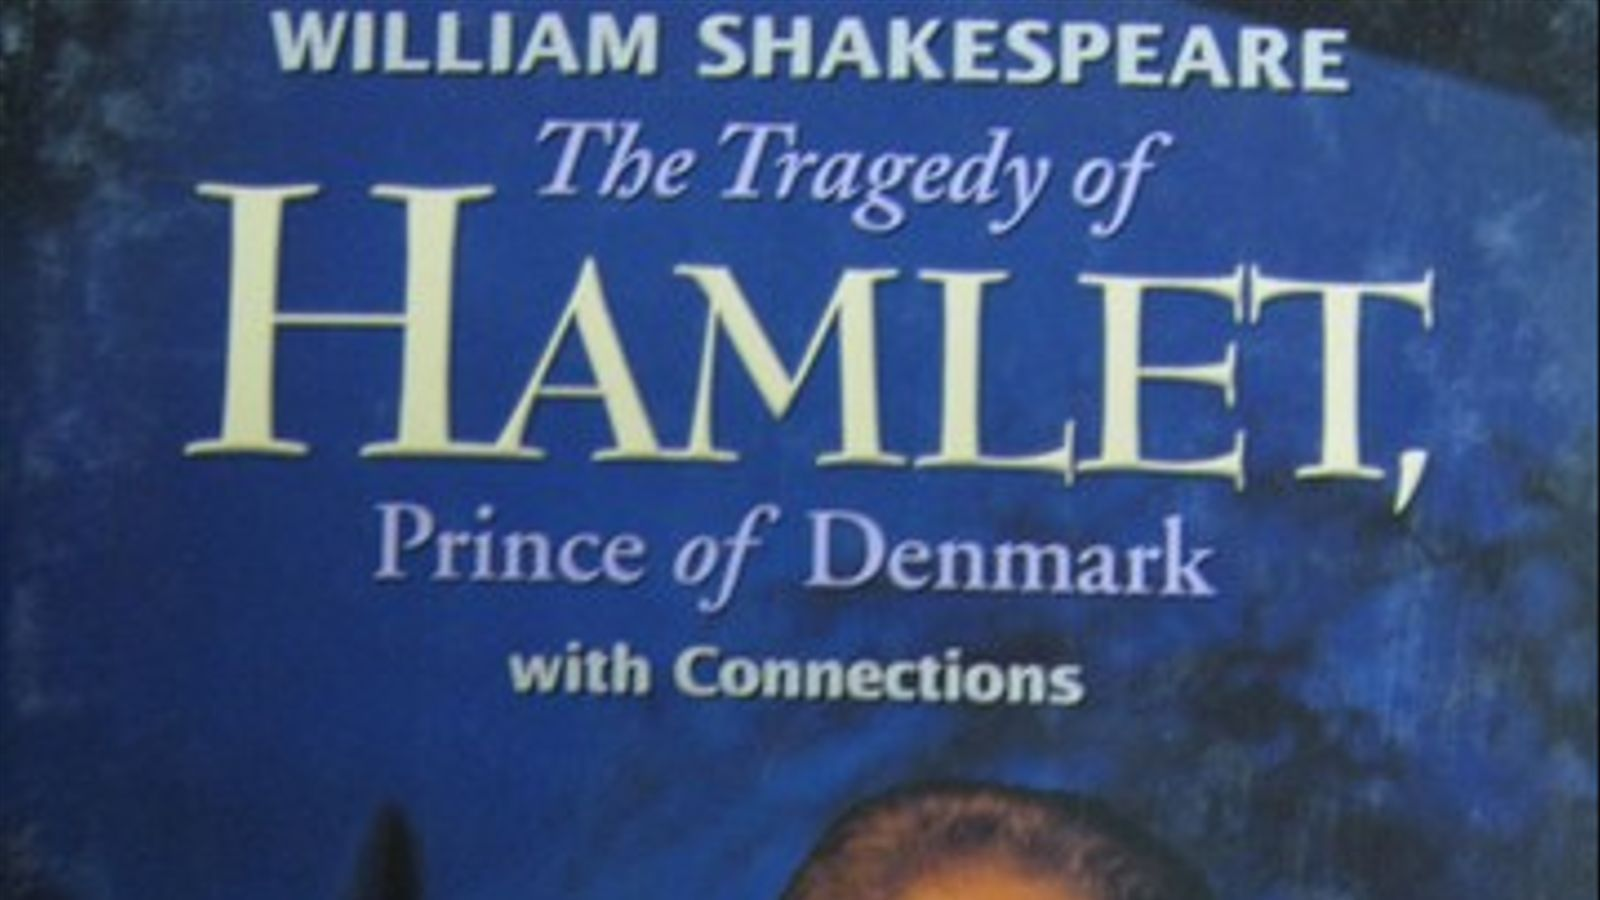 the tragedy of hamlet prince of The tragedy of hamlet, prince of denmark (1600) scenes (20 total) complete text act i scene 1 elsinore a platform before the castle scene 2 elsinore.